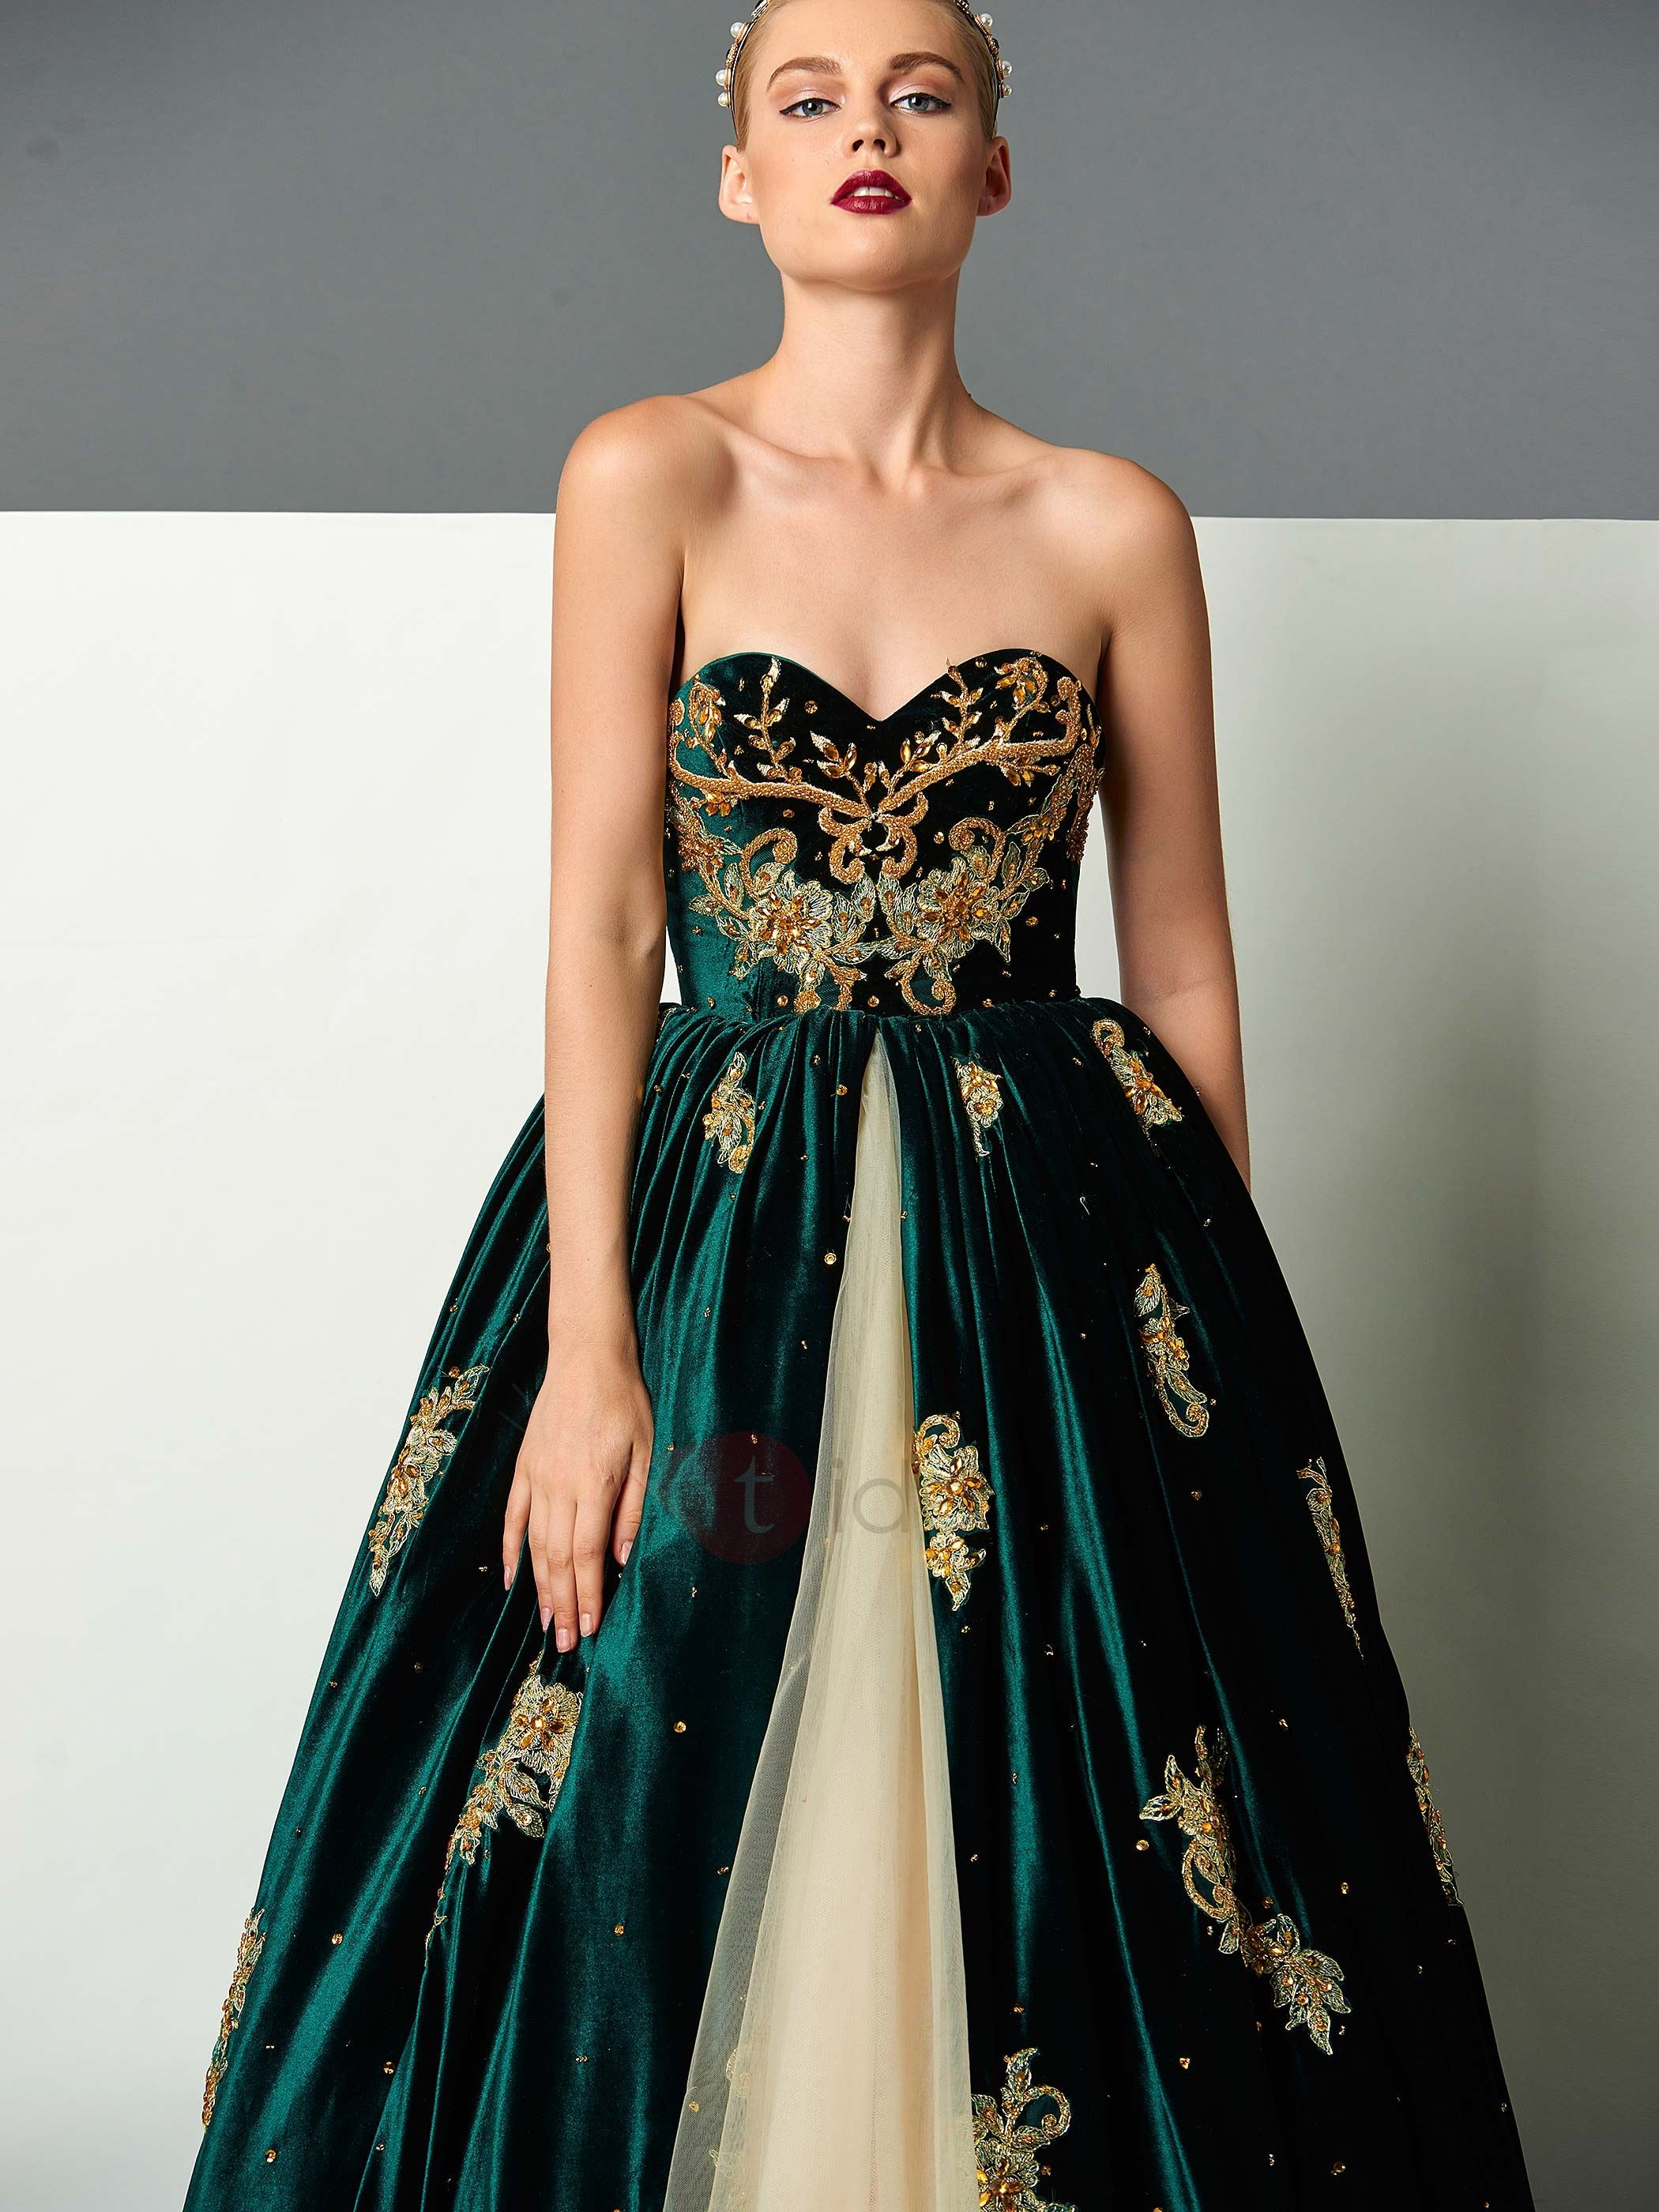 Nude Cocktail Dresses Luxury Embroidered Applique Beading